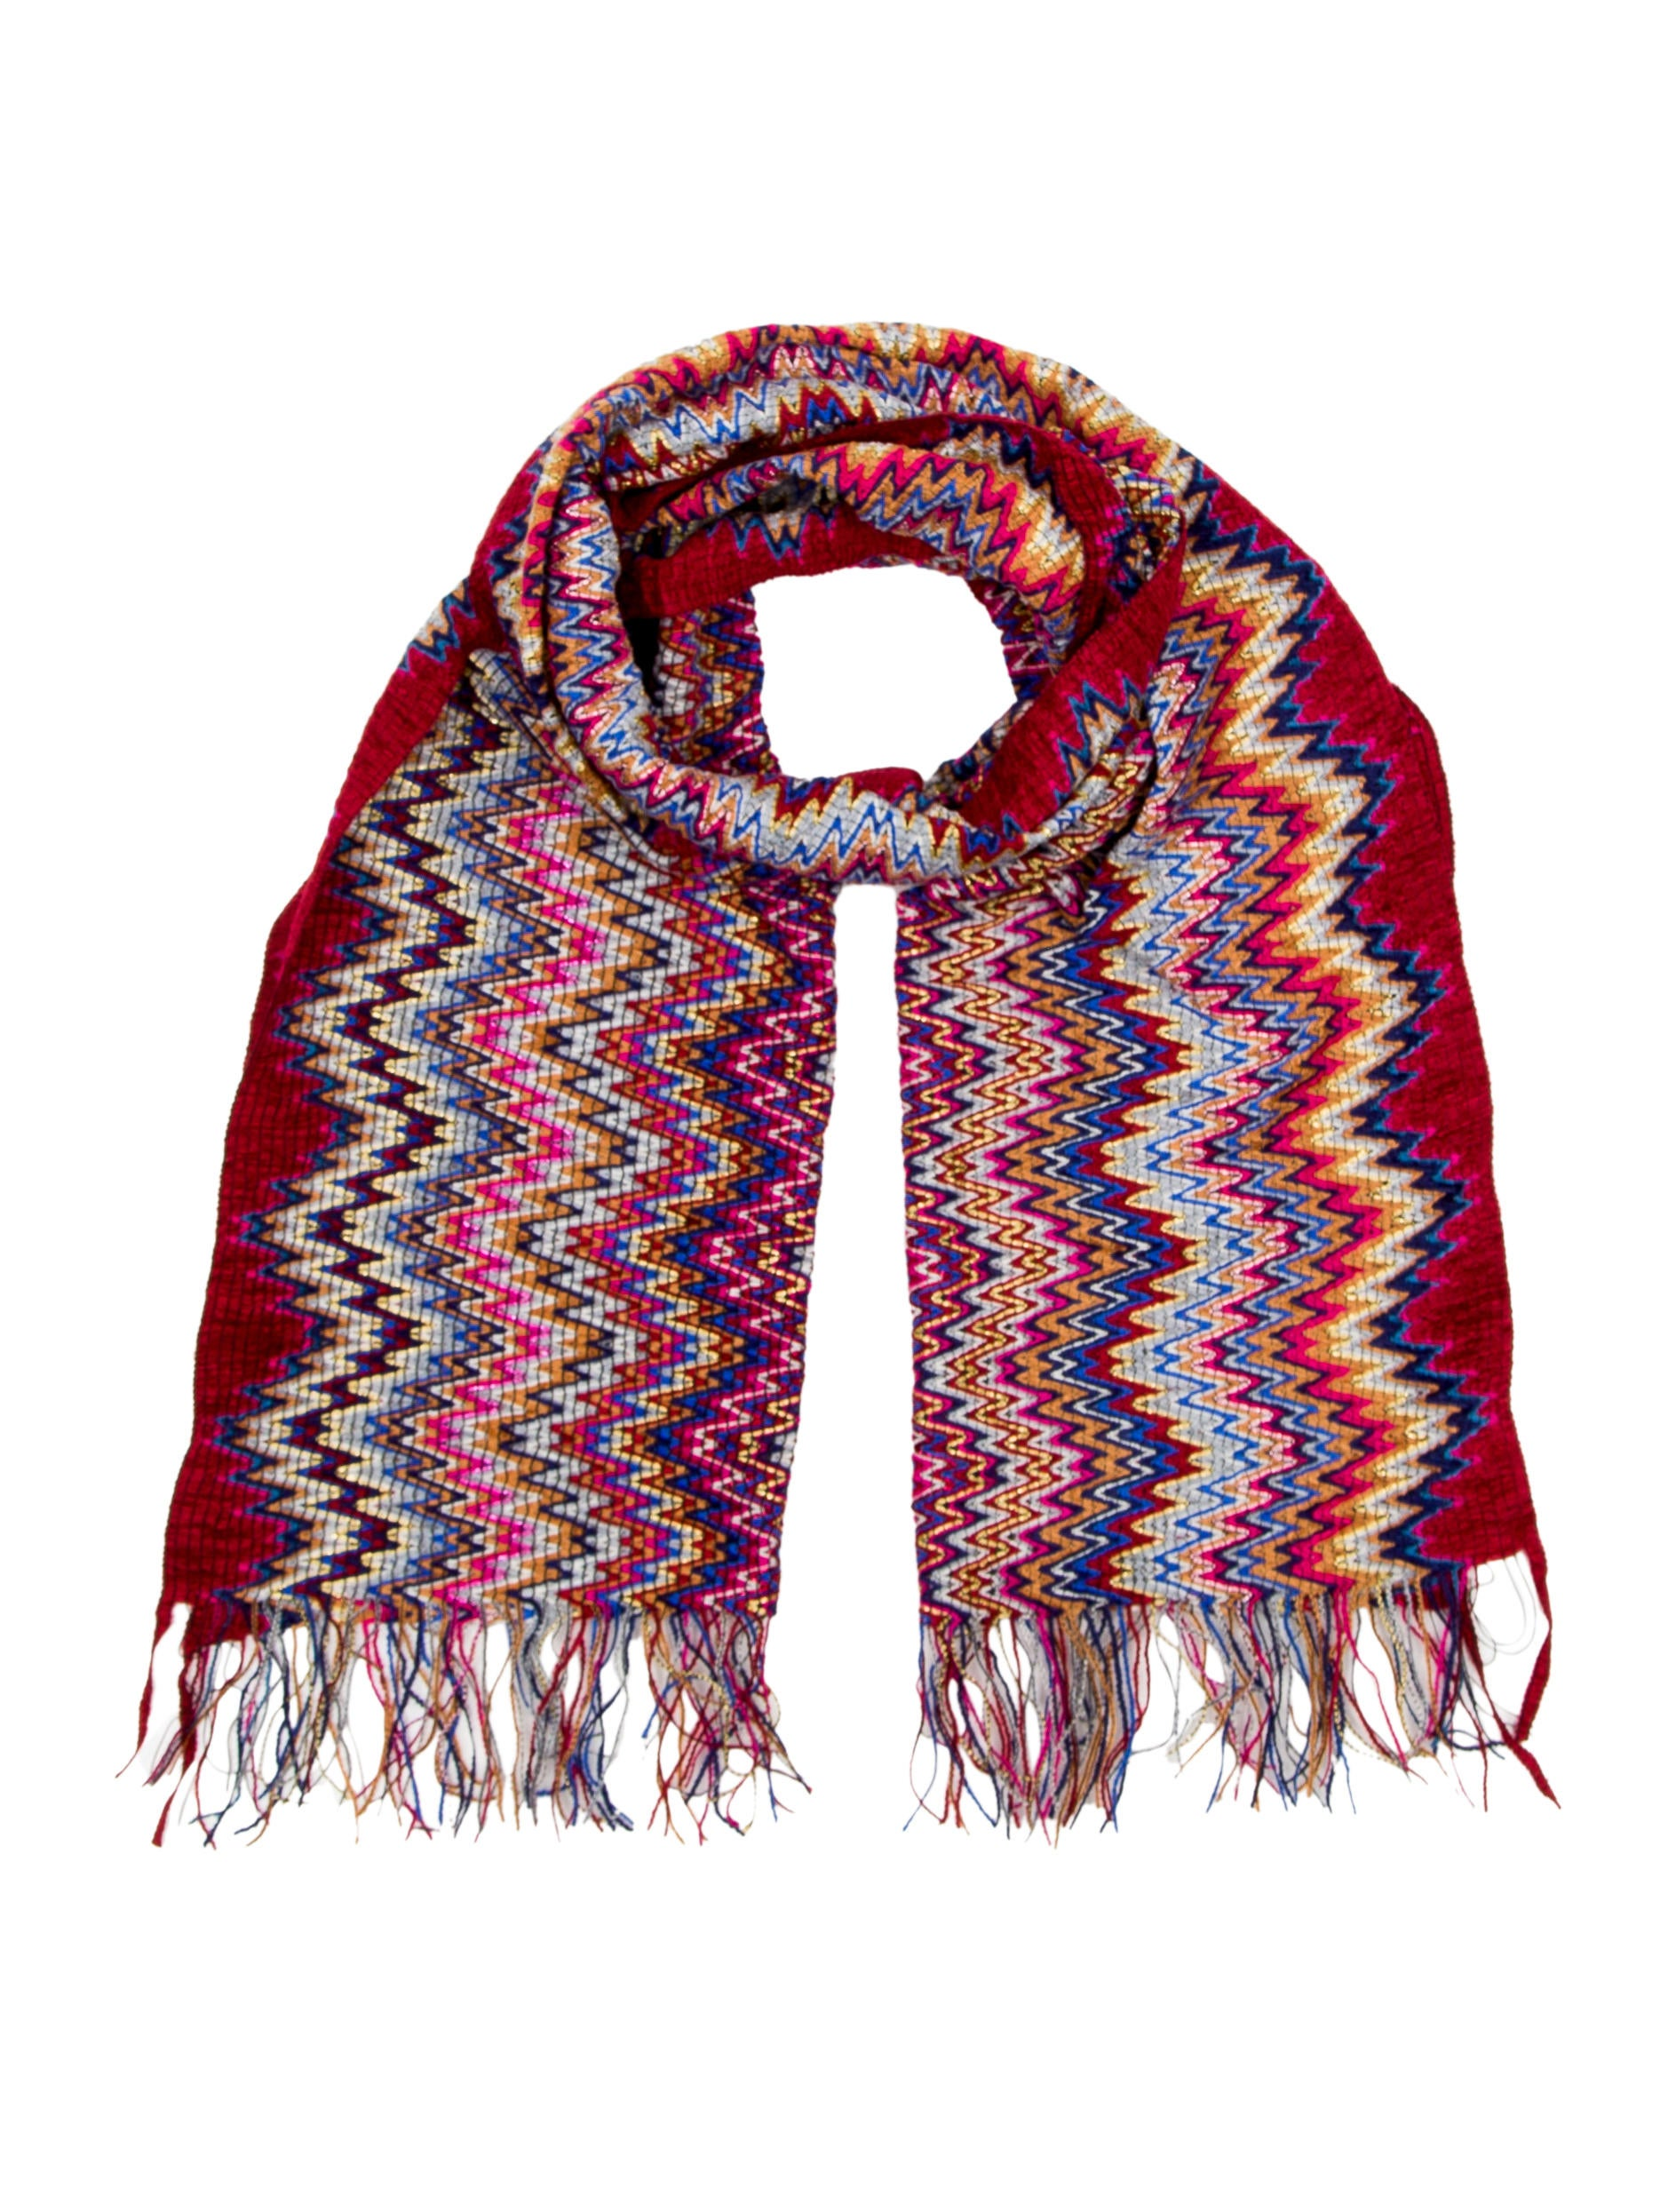 Silk Twilly Scarf Handbag Accessory Add a pop of color to your handbag, hair, wrist, neck & more with twilly ribbon scarves. Soft, silky and easy to use, just wrap the handle or tie a bow.